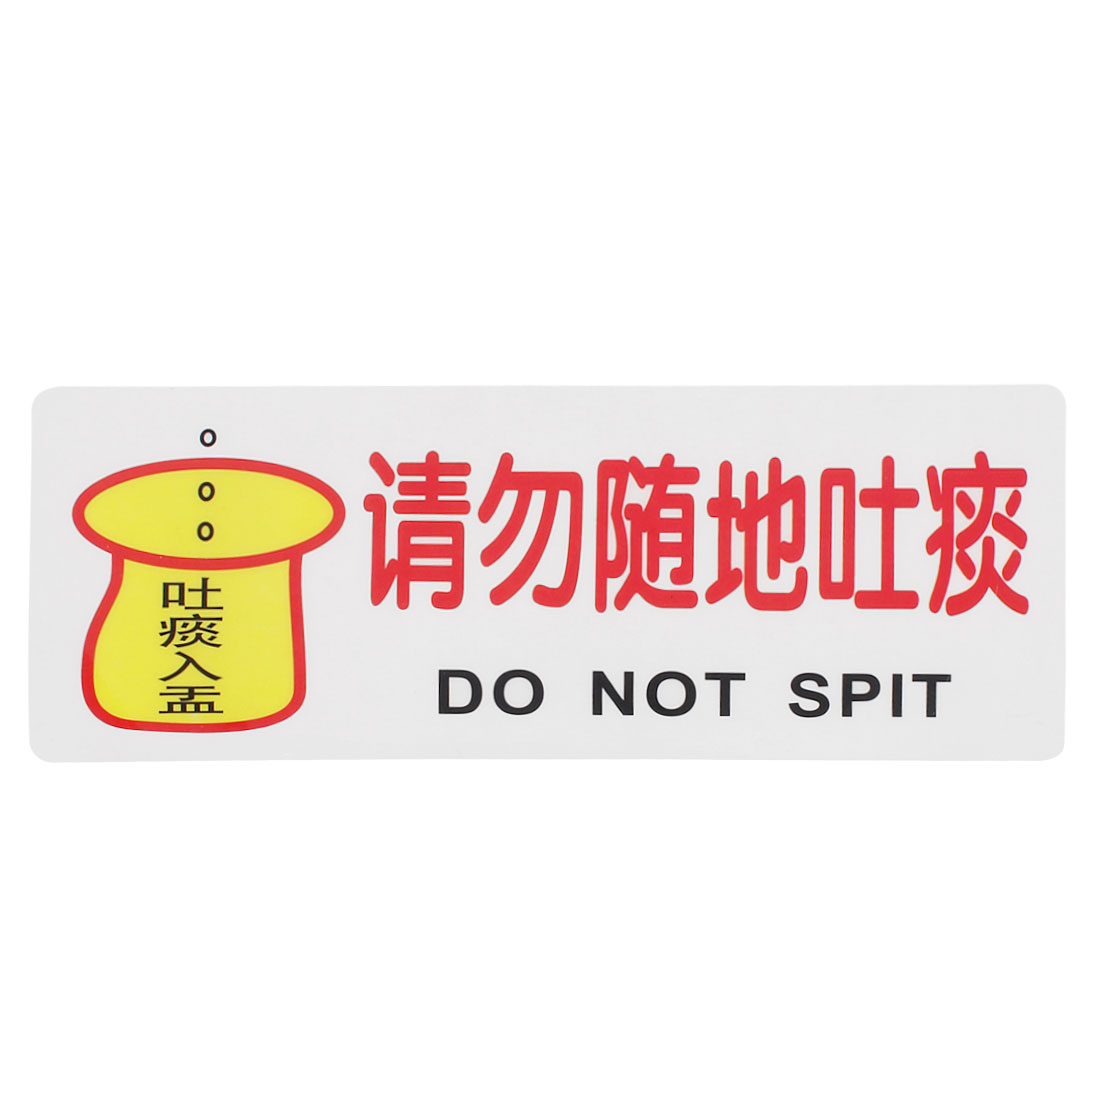 Public Places Plastic Self Adhesive Do Not Spit Prohibit Healthcare Sign Car Notice Sticker Decal